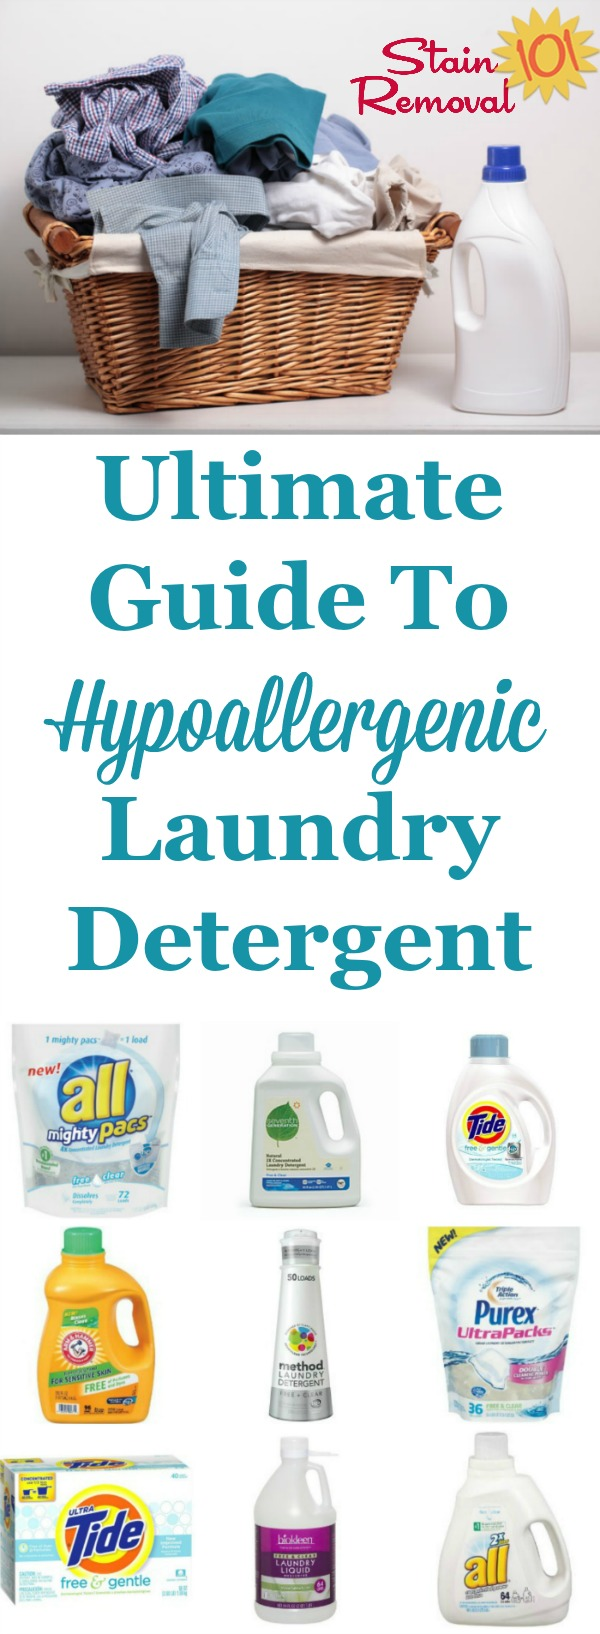 How Much He Detergent To Use Ultimate Guide To Hypoallergenic Laundry Detergent Use It To